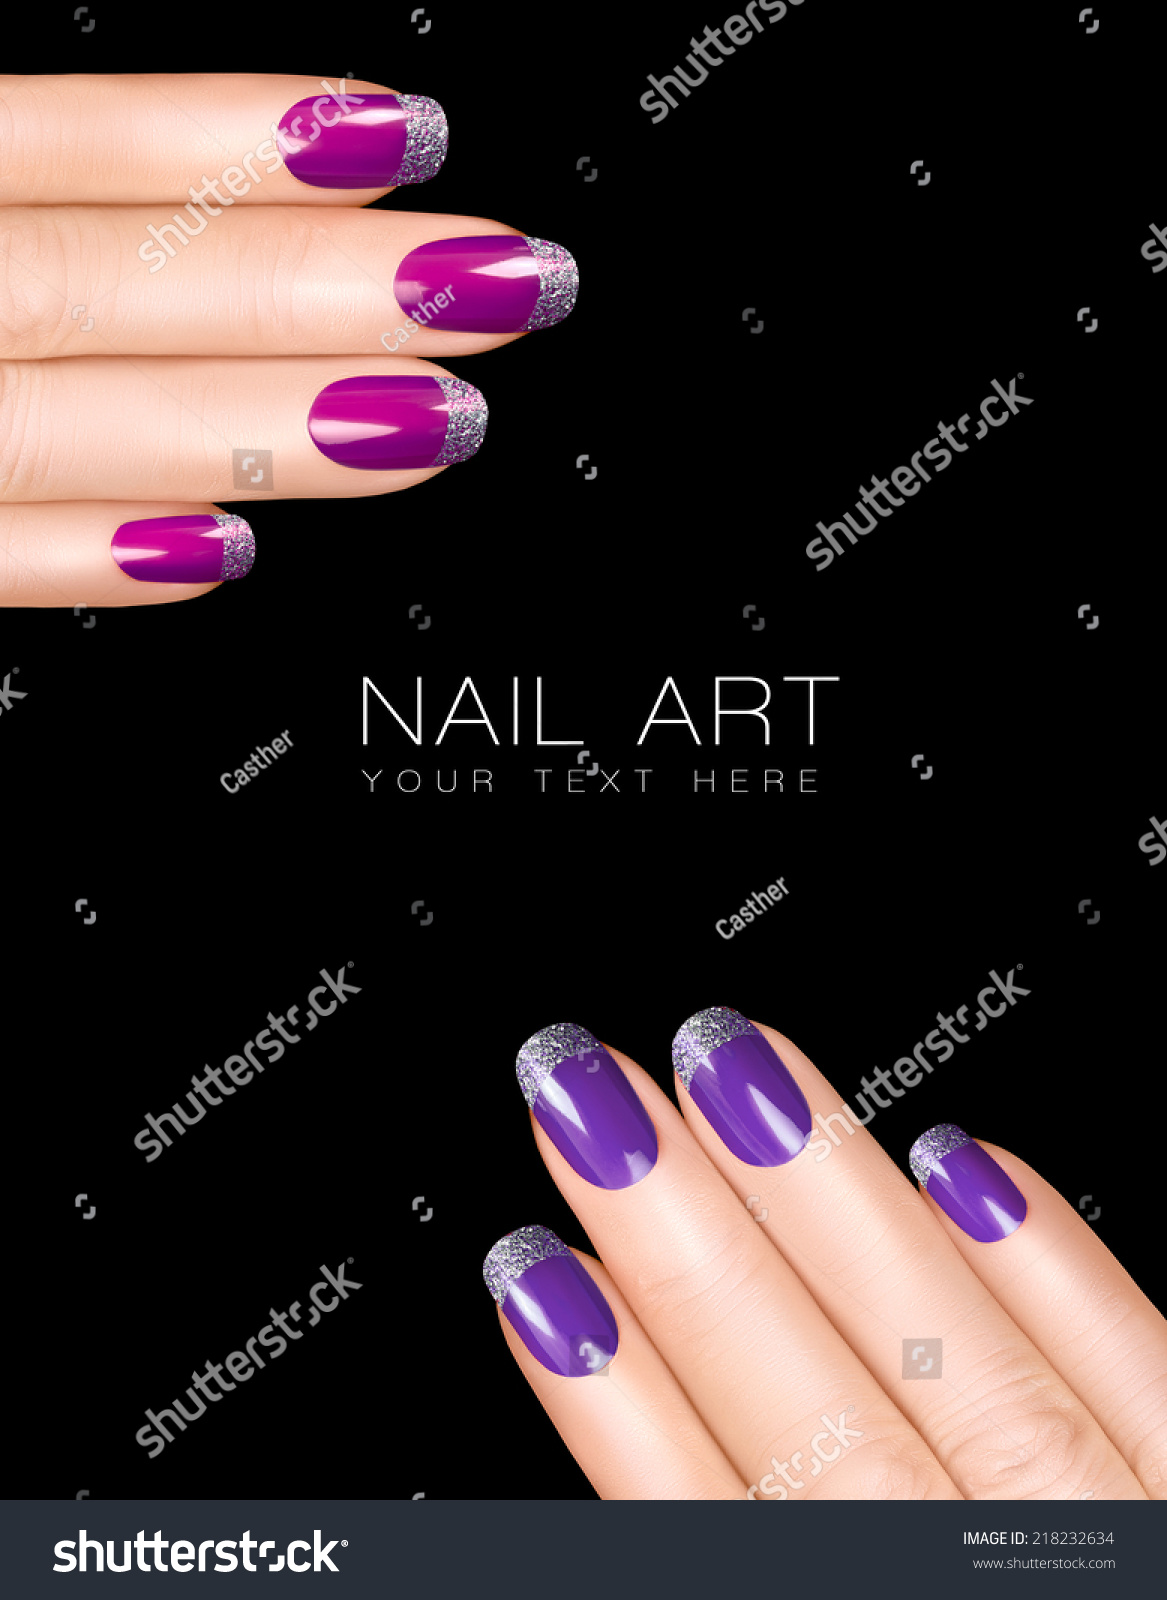 Trend Holiday Nail Art Luxury Purple Stock Photo (Royalty Free ...